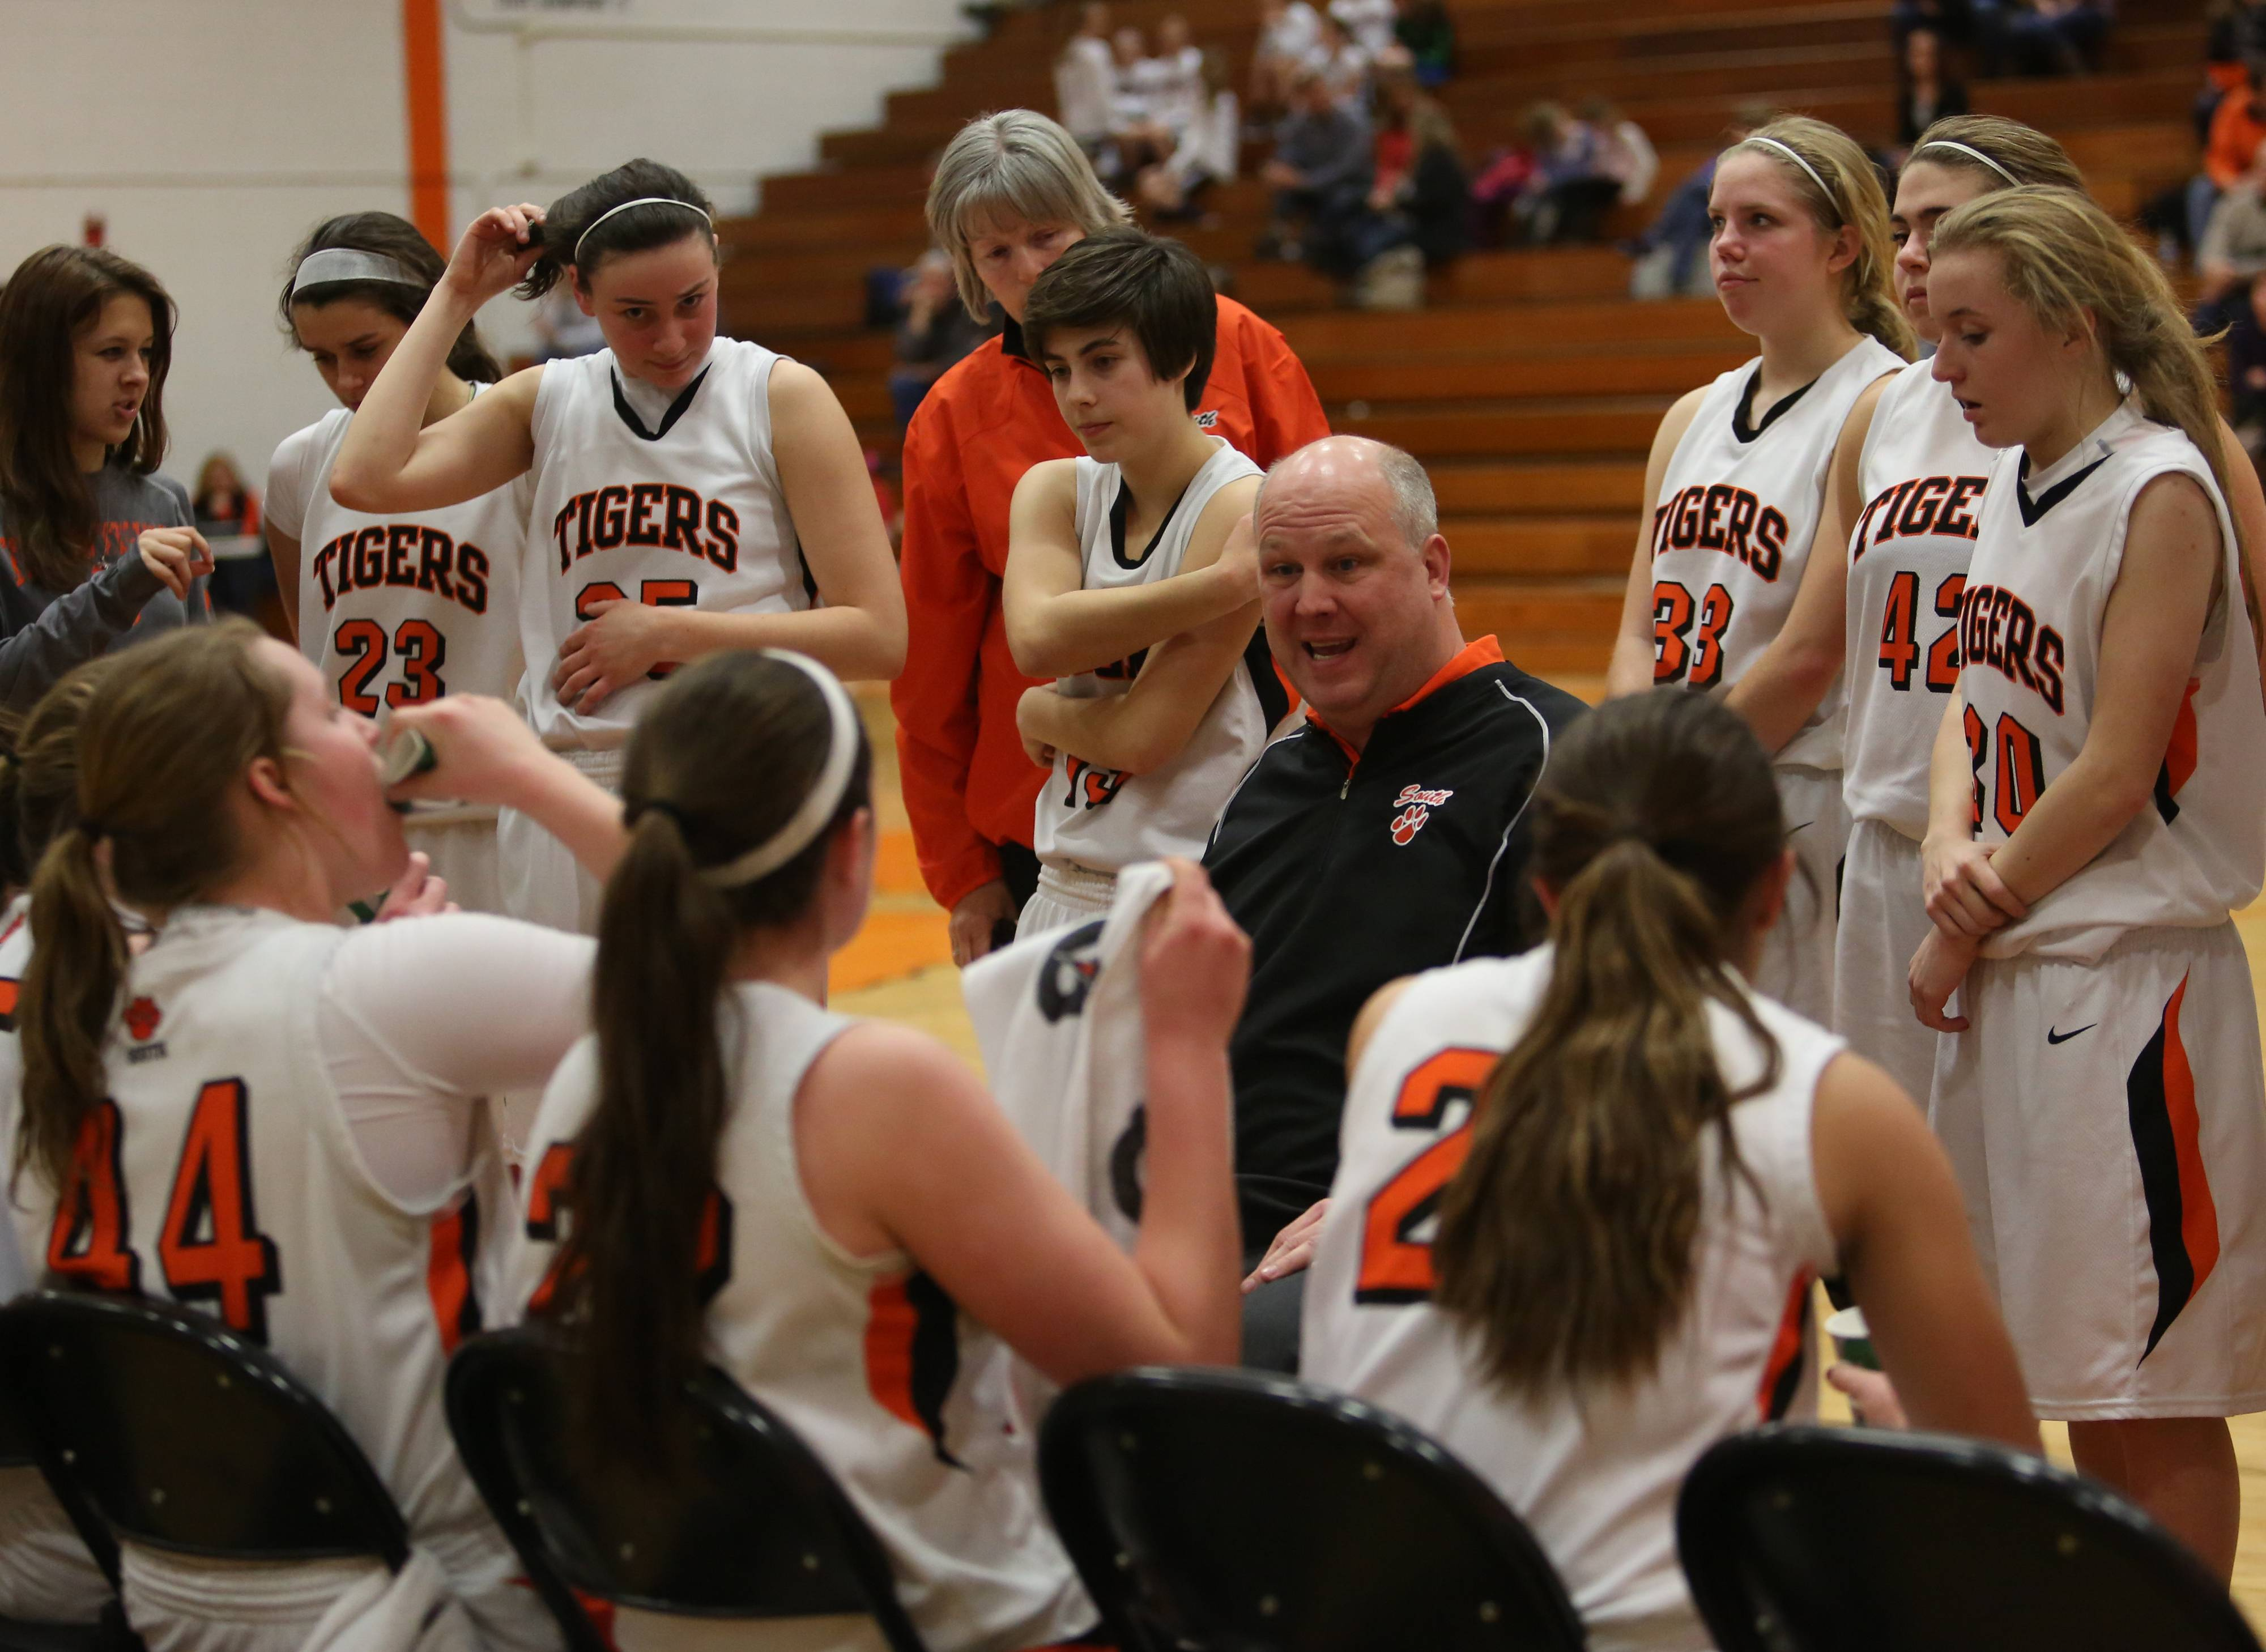 Photos from the West Auroura at Wheaton Warrenville South girls basketball game Monday, Feb. 10.